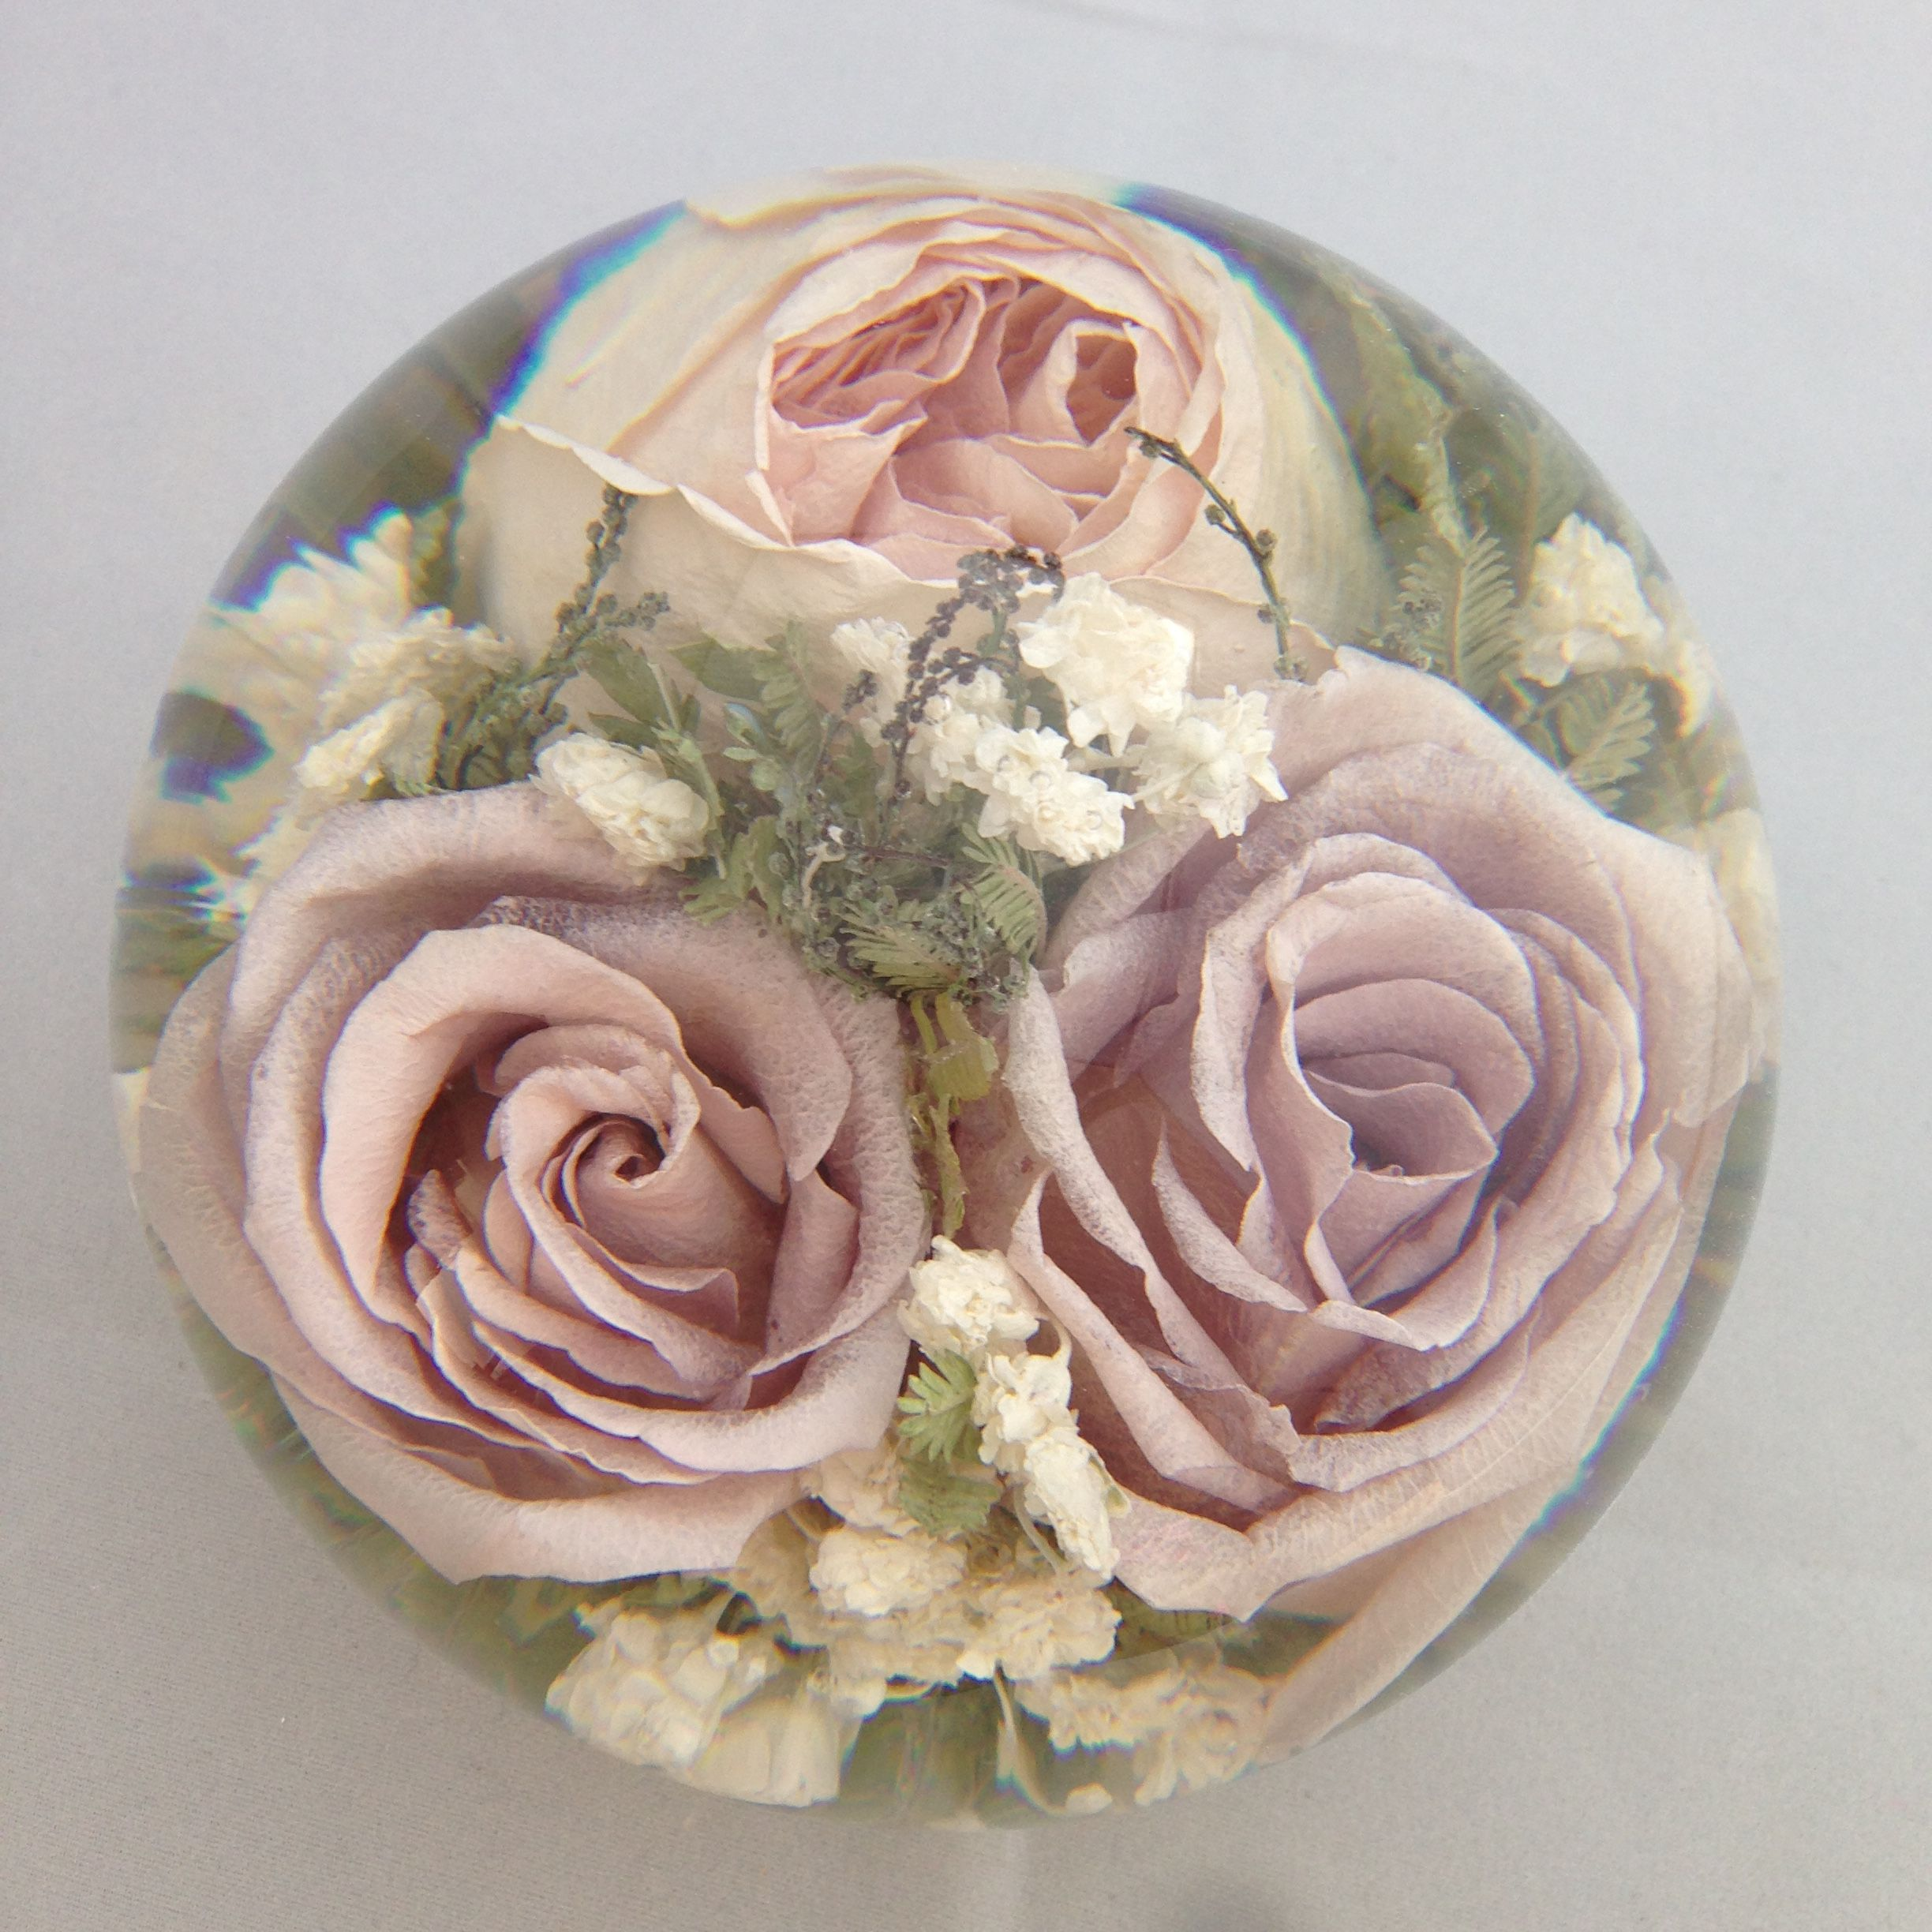 Wedding Flowers In Resin: Captured Forever Within A Lovey Wedding Flower Paperweight